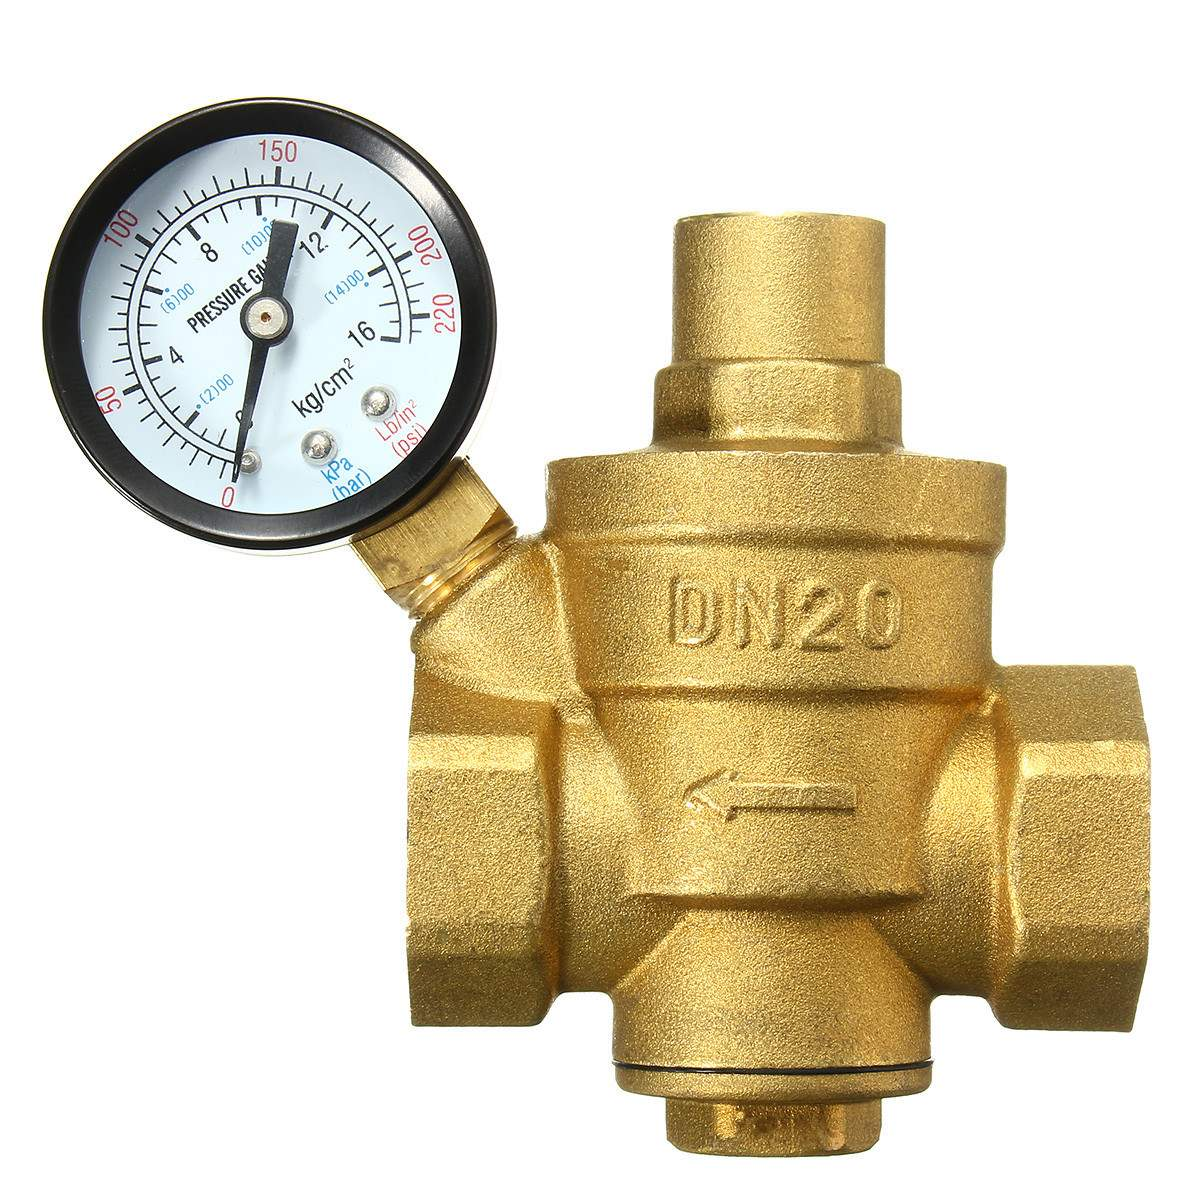 Adjustable Water Heater Pressure Reducing Valve With Gauge Meter Safety Relief Valve Pressure Regulator Controller 1/2